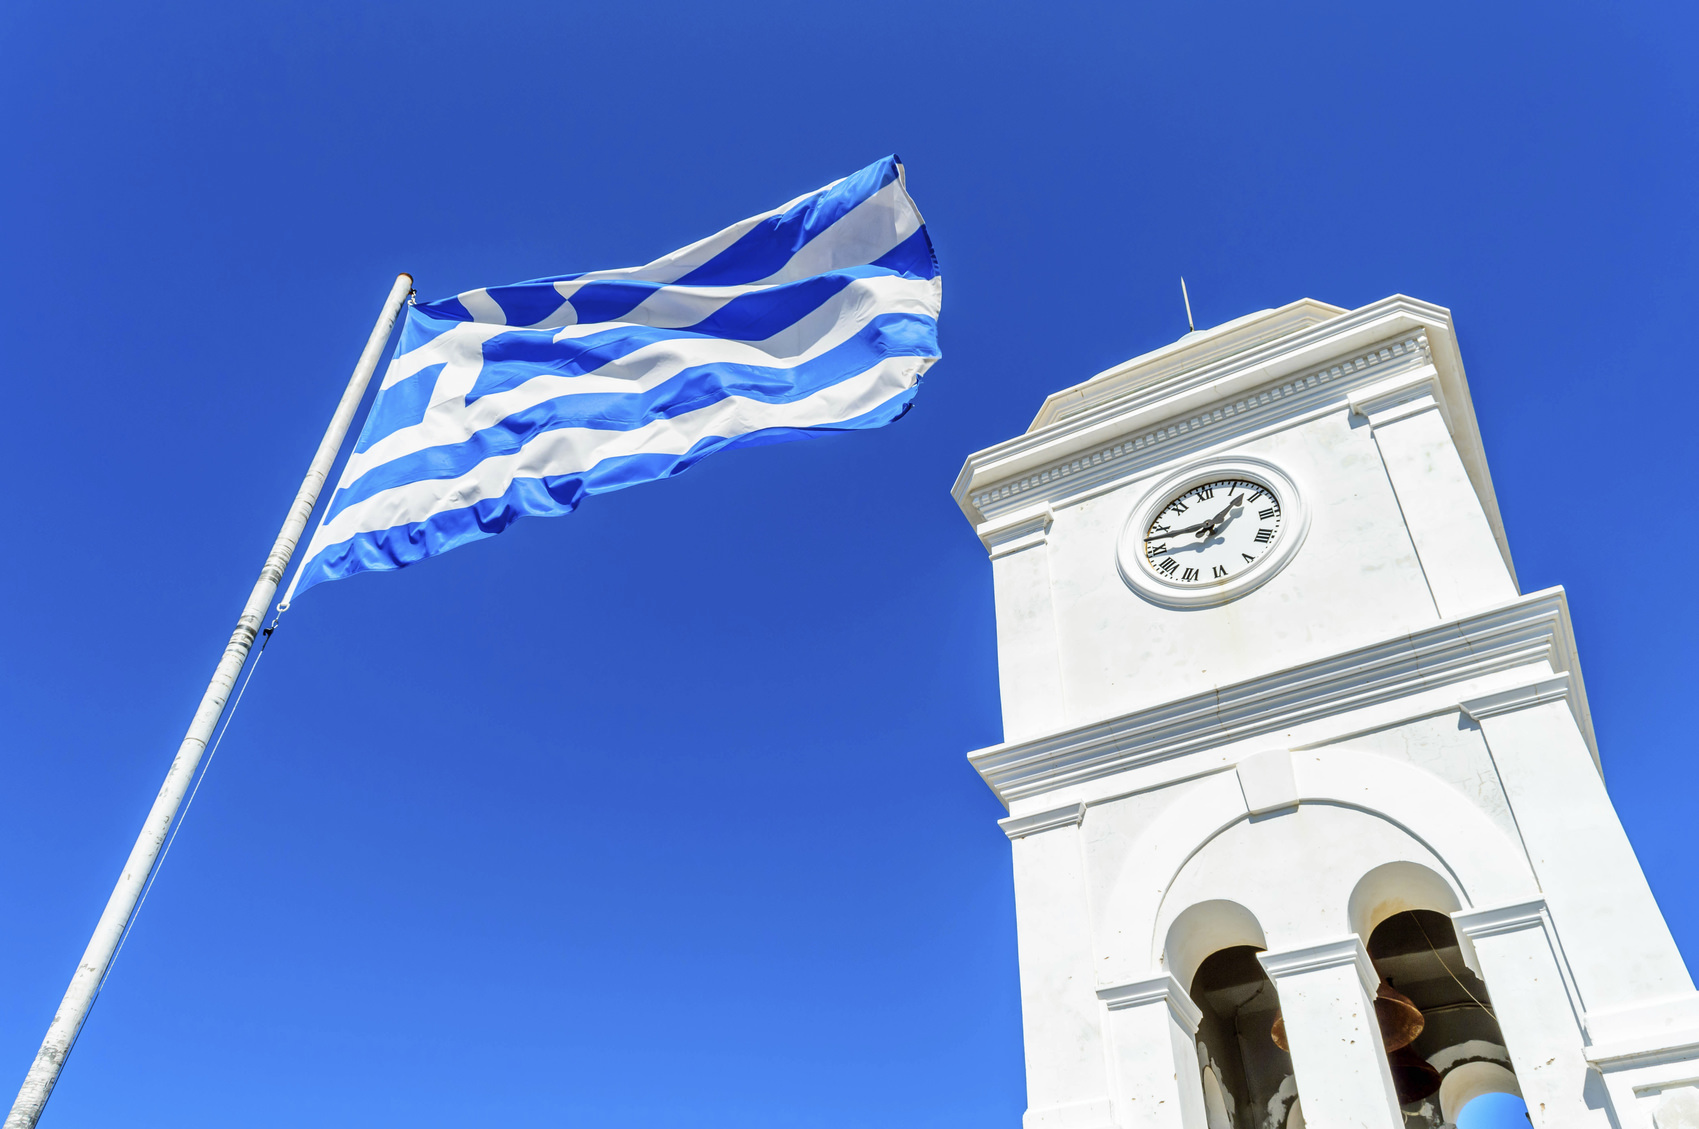 Poros, Greece - 03 October, 2015: The Clock tower of Poros Island in Greece with the Greek flag.